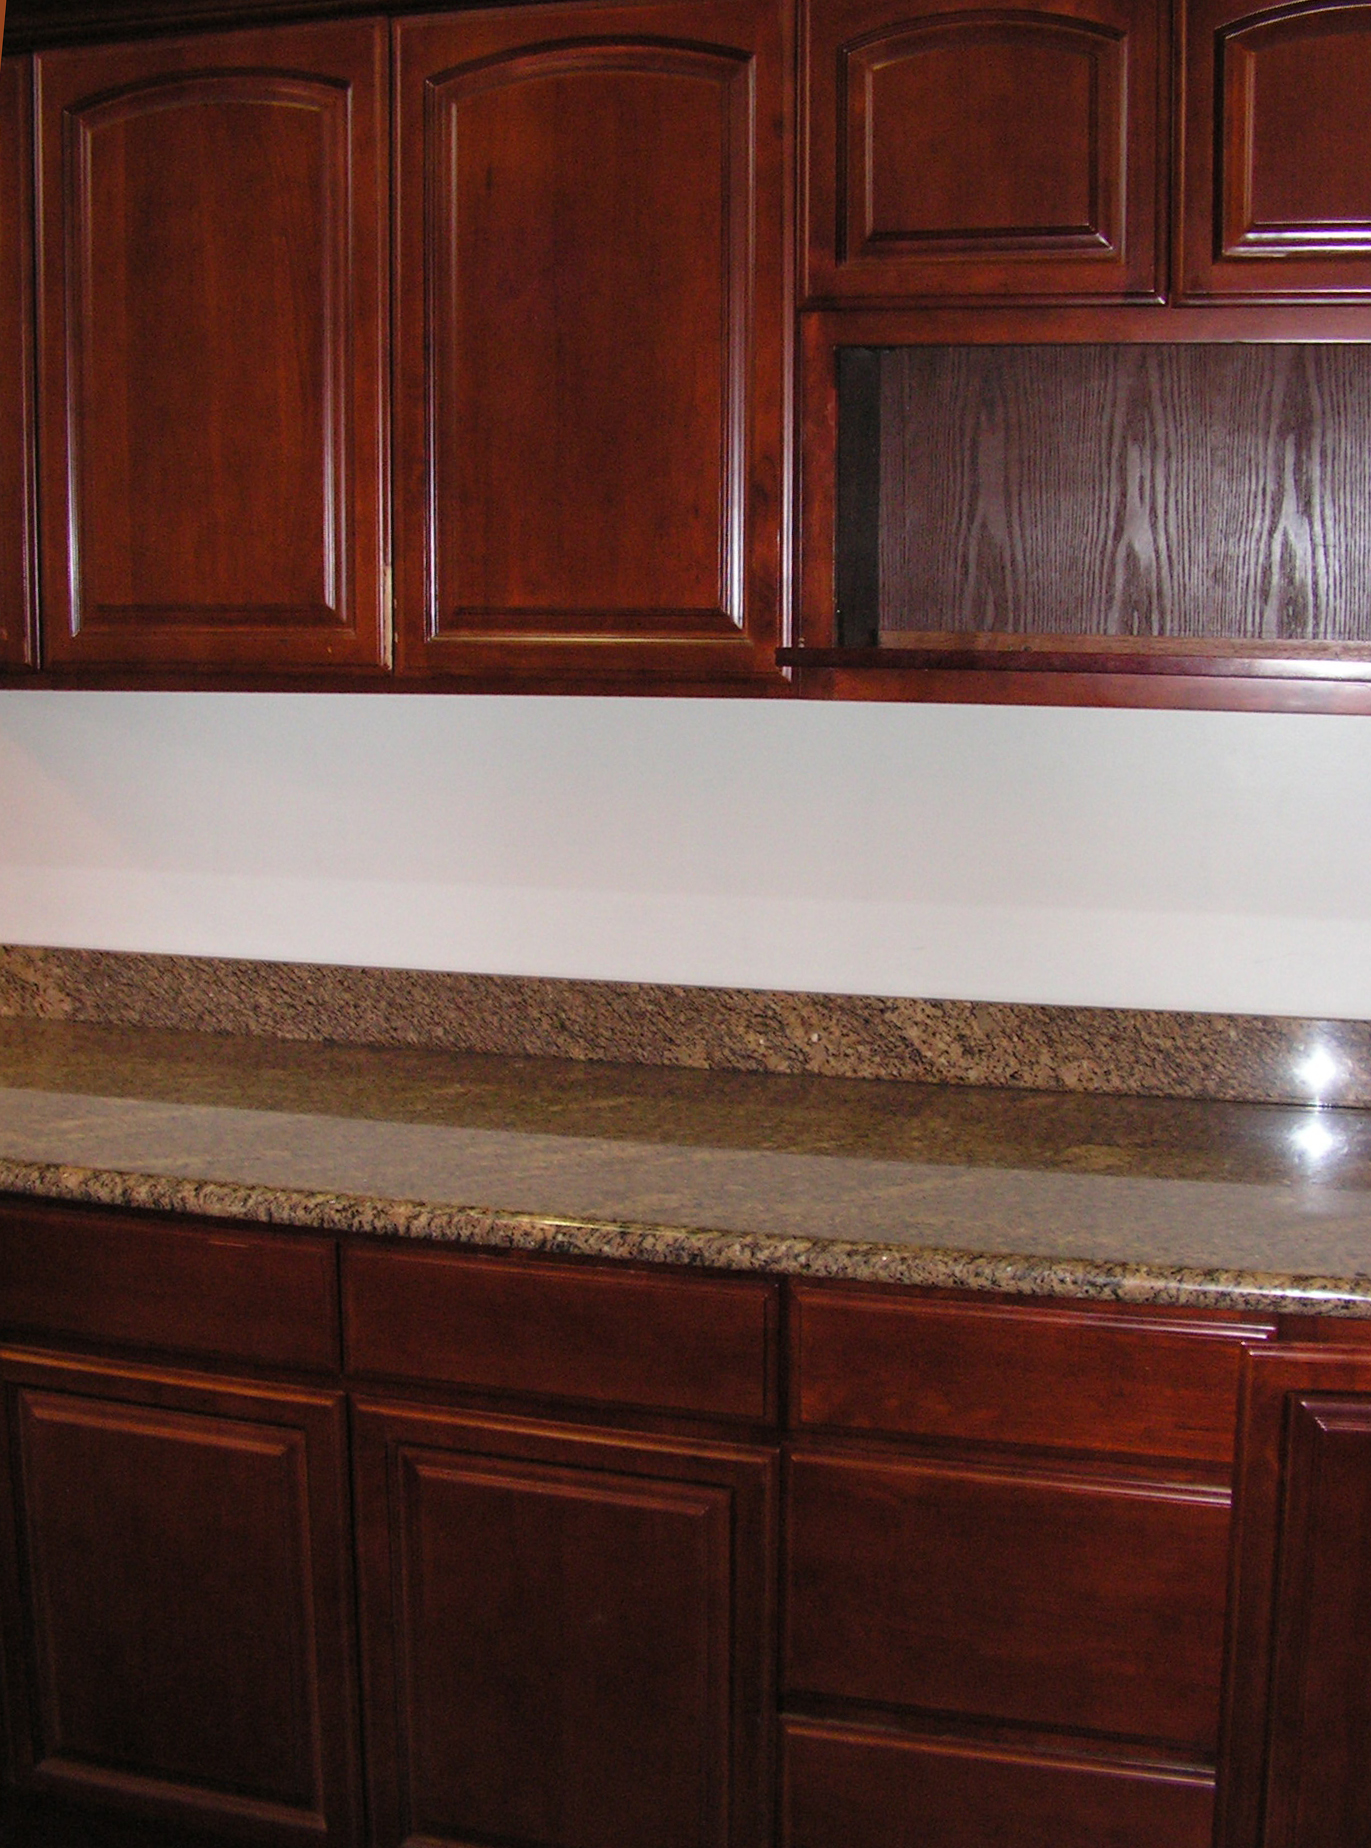 kitchen cabinets cherry stain kitchen cabinet stain kitchen cabinets cherry stain photo 4